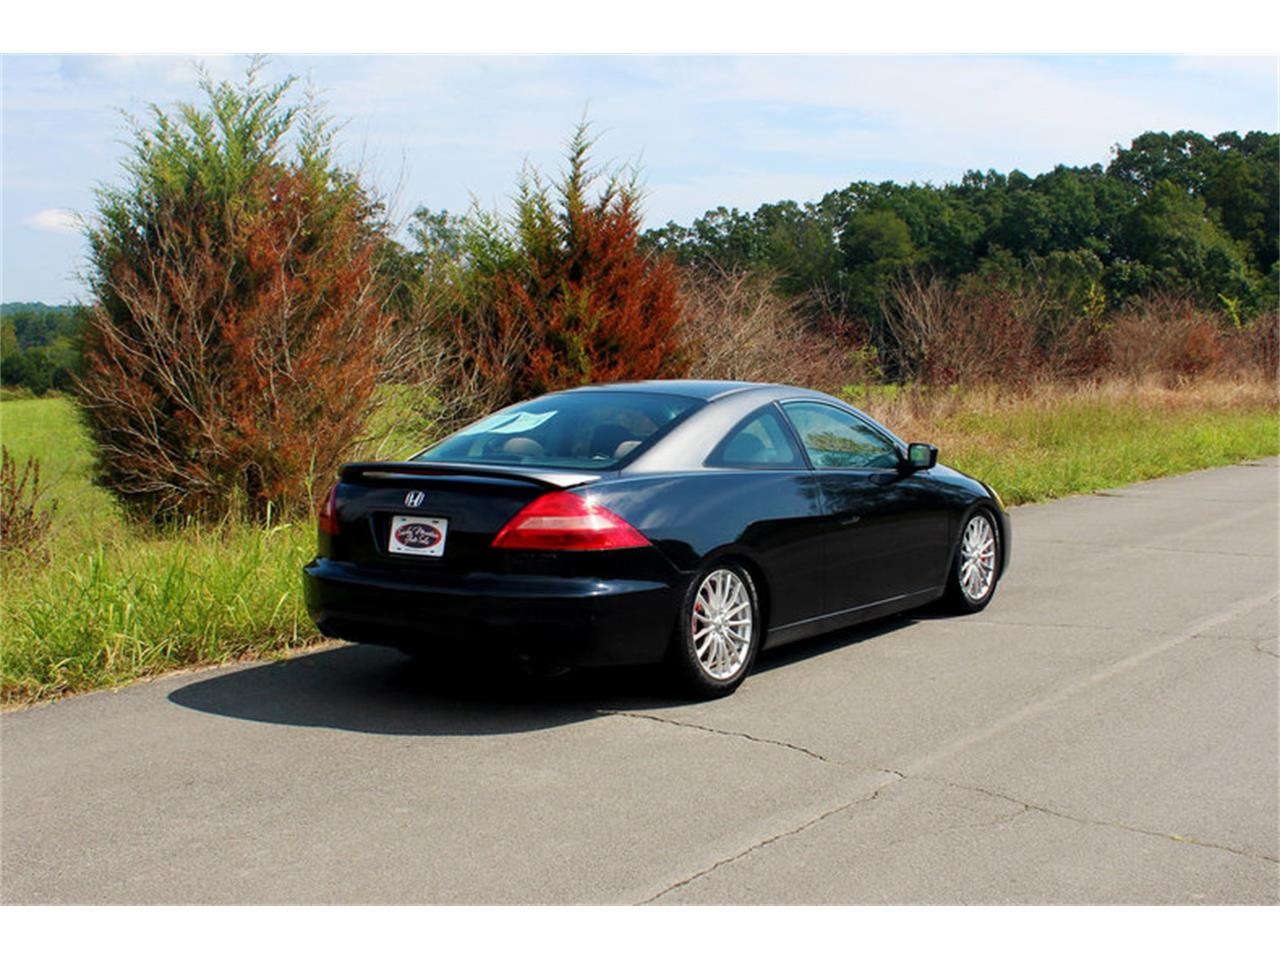 Large Picture of '04 Accord - $5,995.00 Offered by Smoky Mountain Traders - OH0M